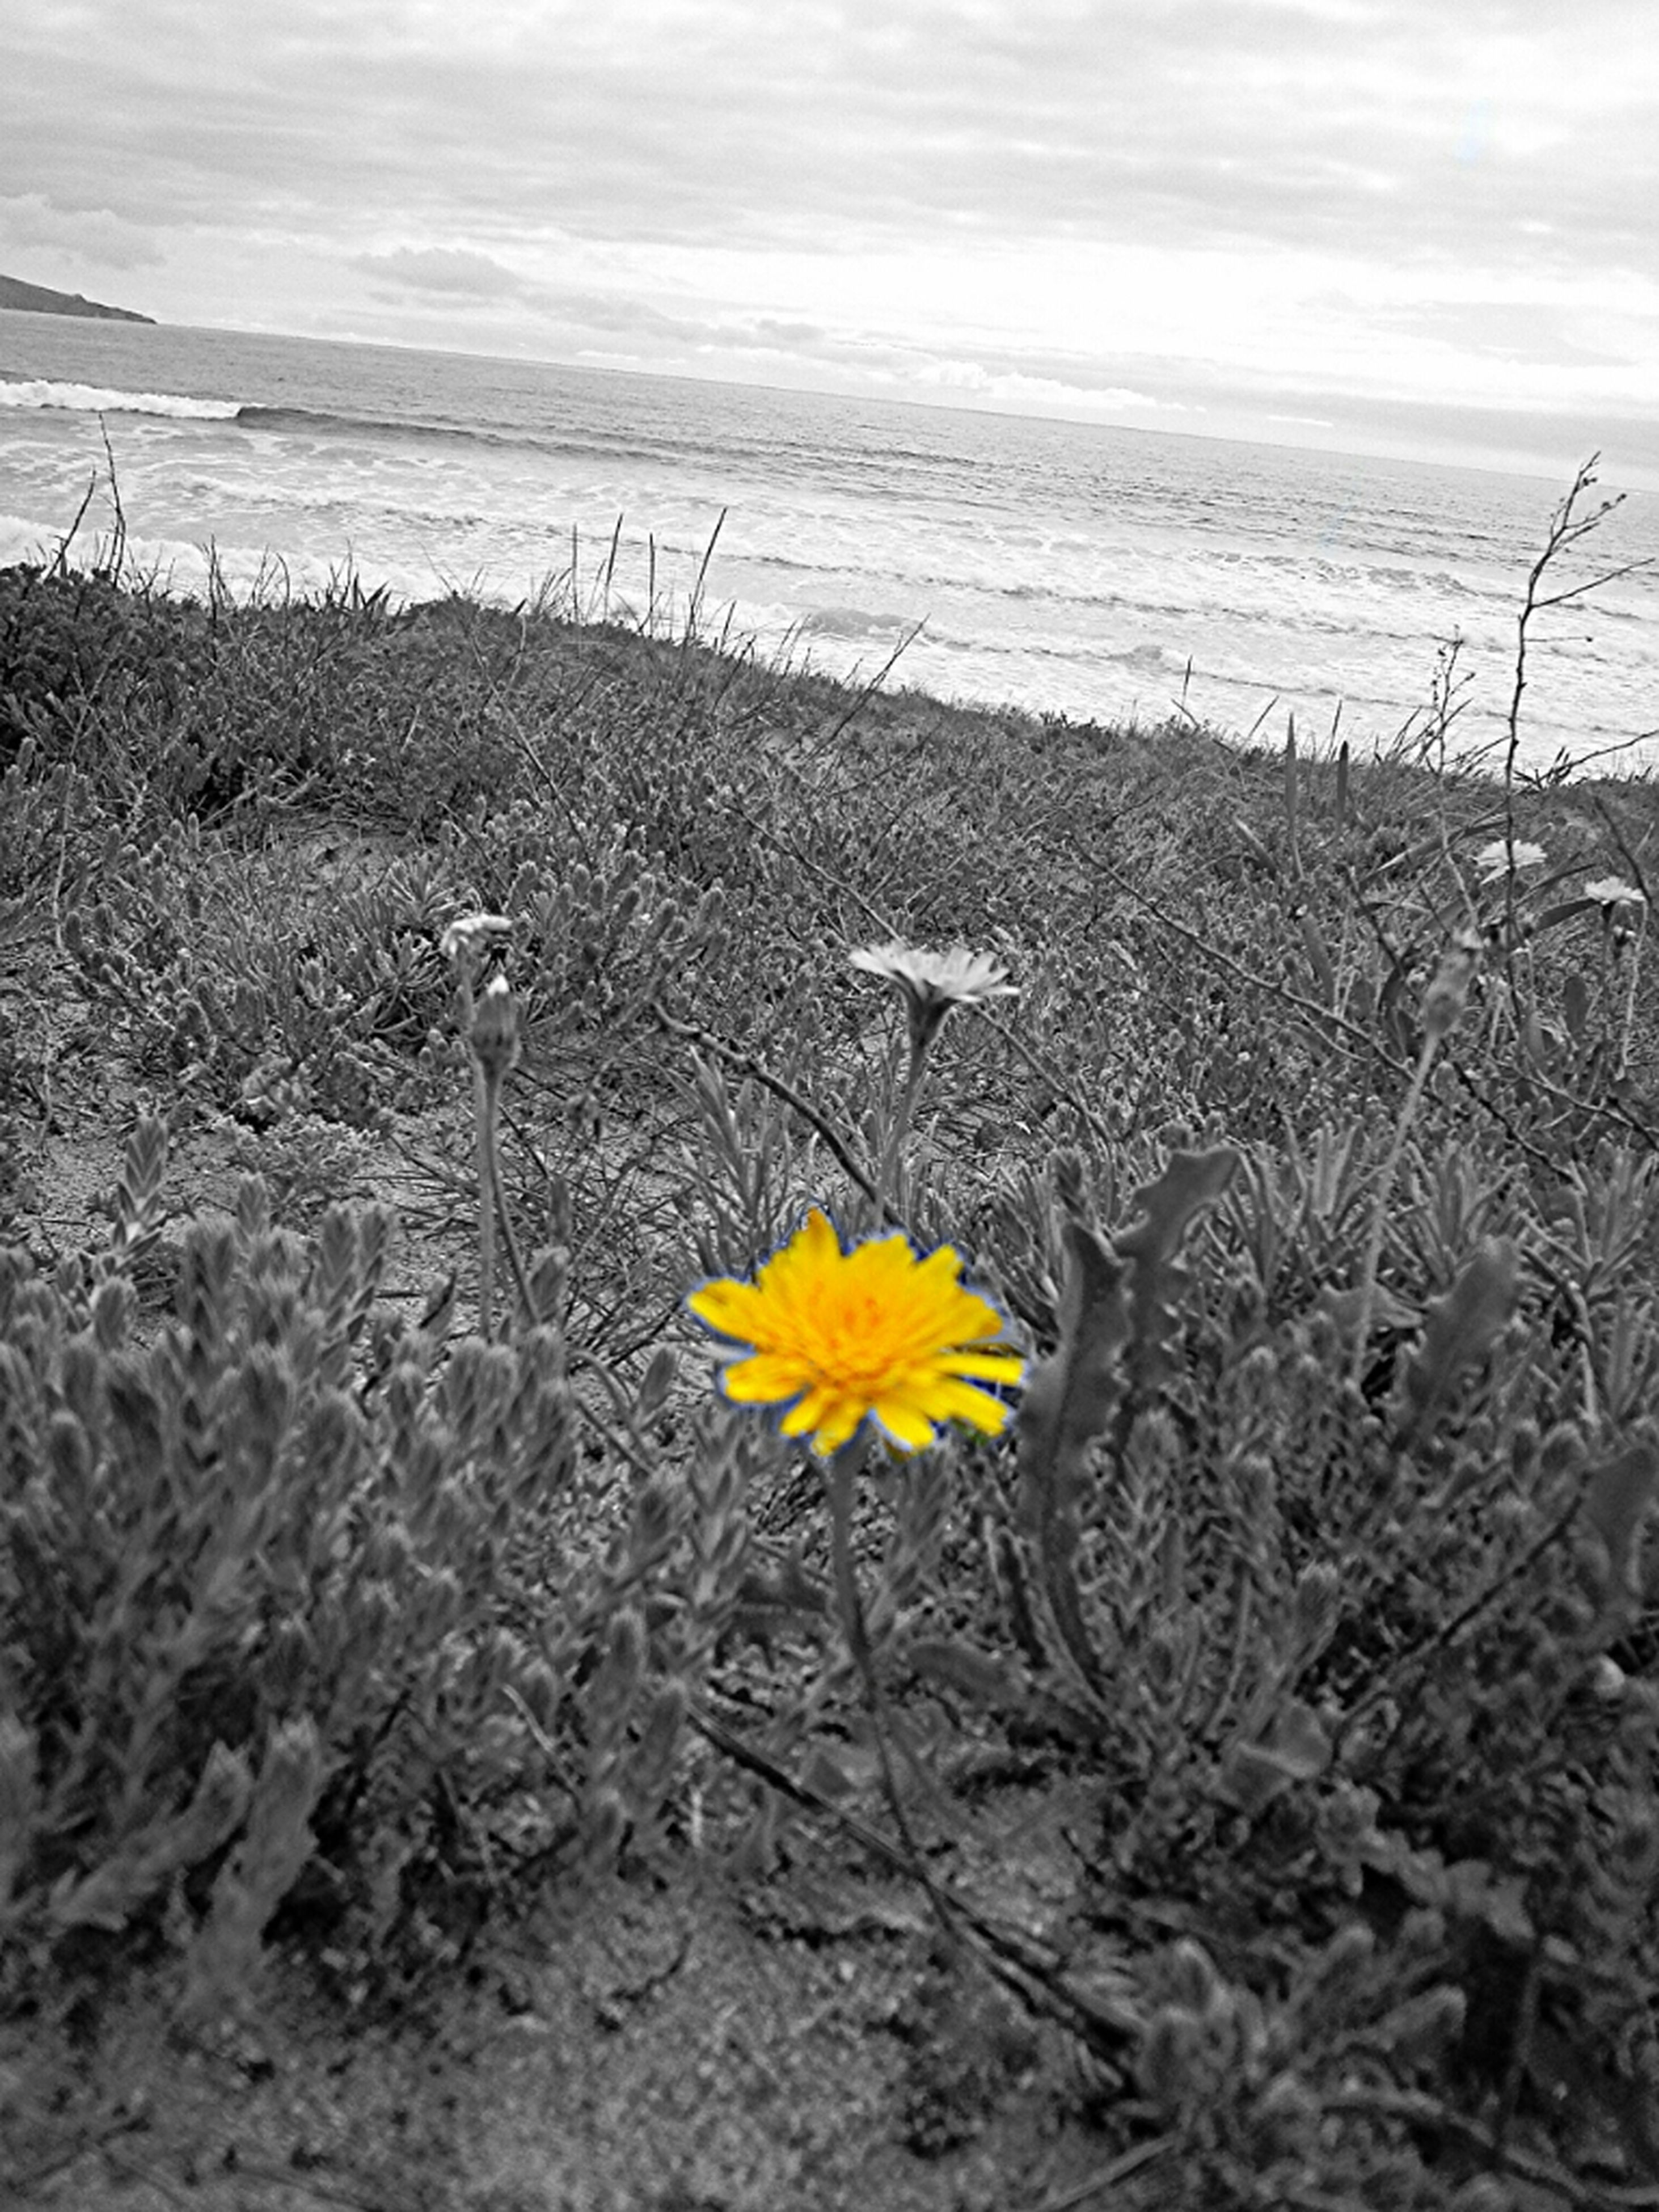 flower, yellow, nature, tranquility, beauty in nature, plant, growth, tranquil scene, fragility, field, sky, sand, dry, high angle view, landscape, beach, outdoors, scenics, freshness, no people